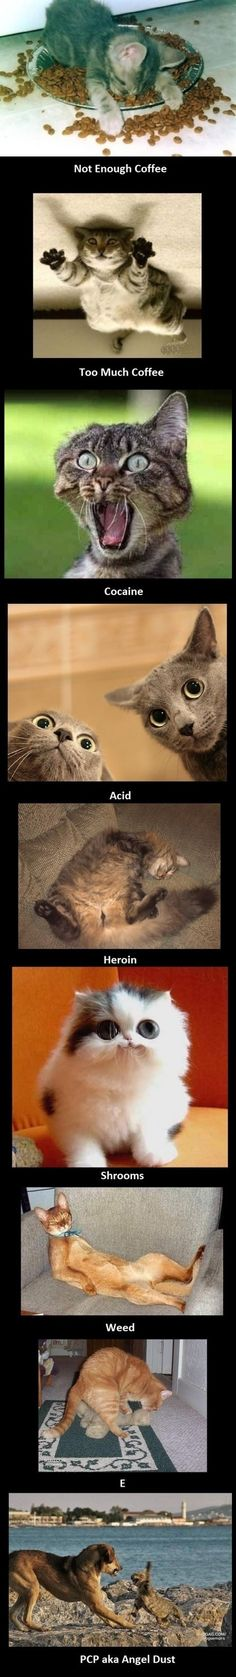 Pets on drugs